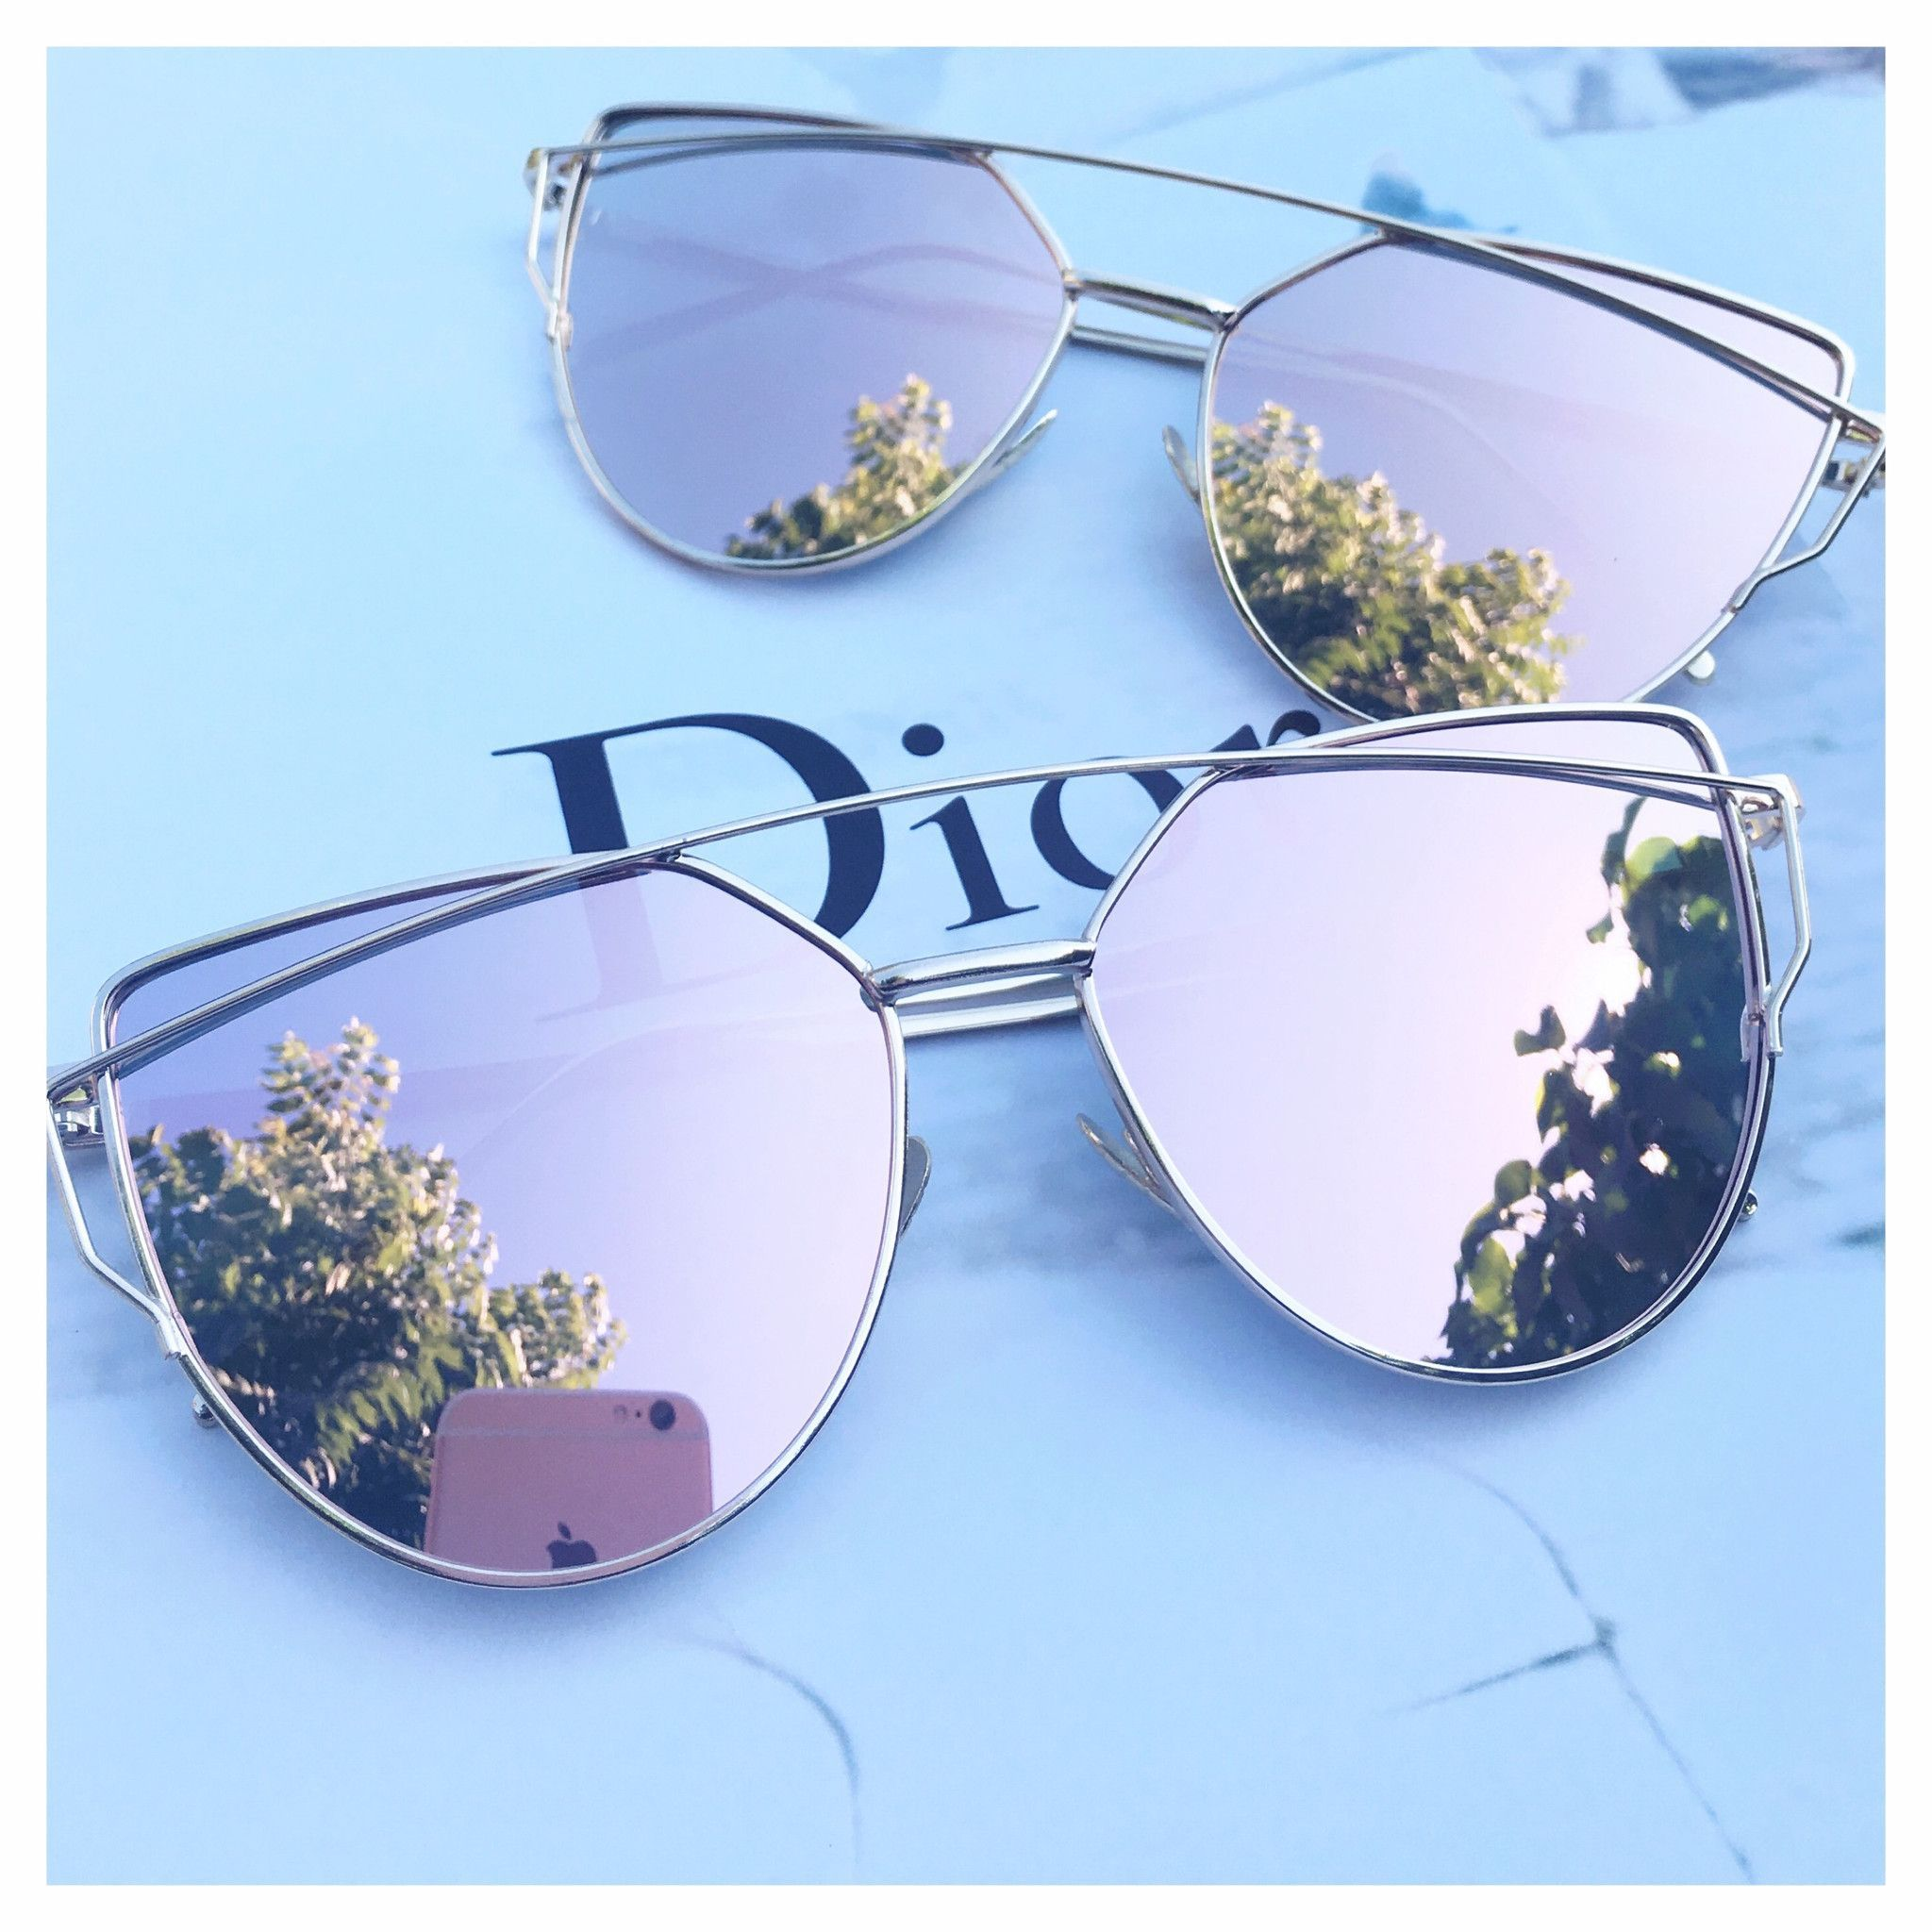 7e2d249bba Rose Gold Mirrored Sunglasses Cat Sunglasses